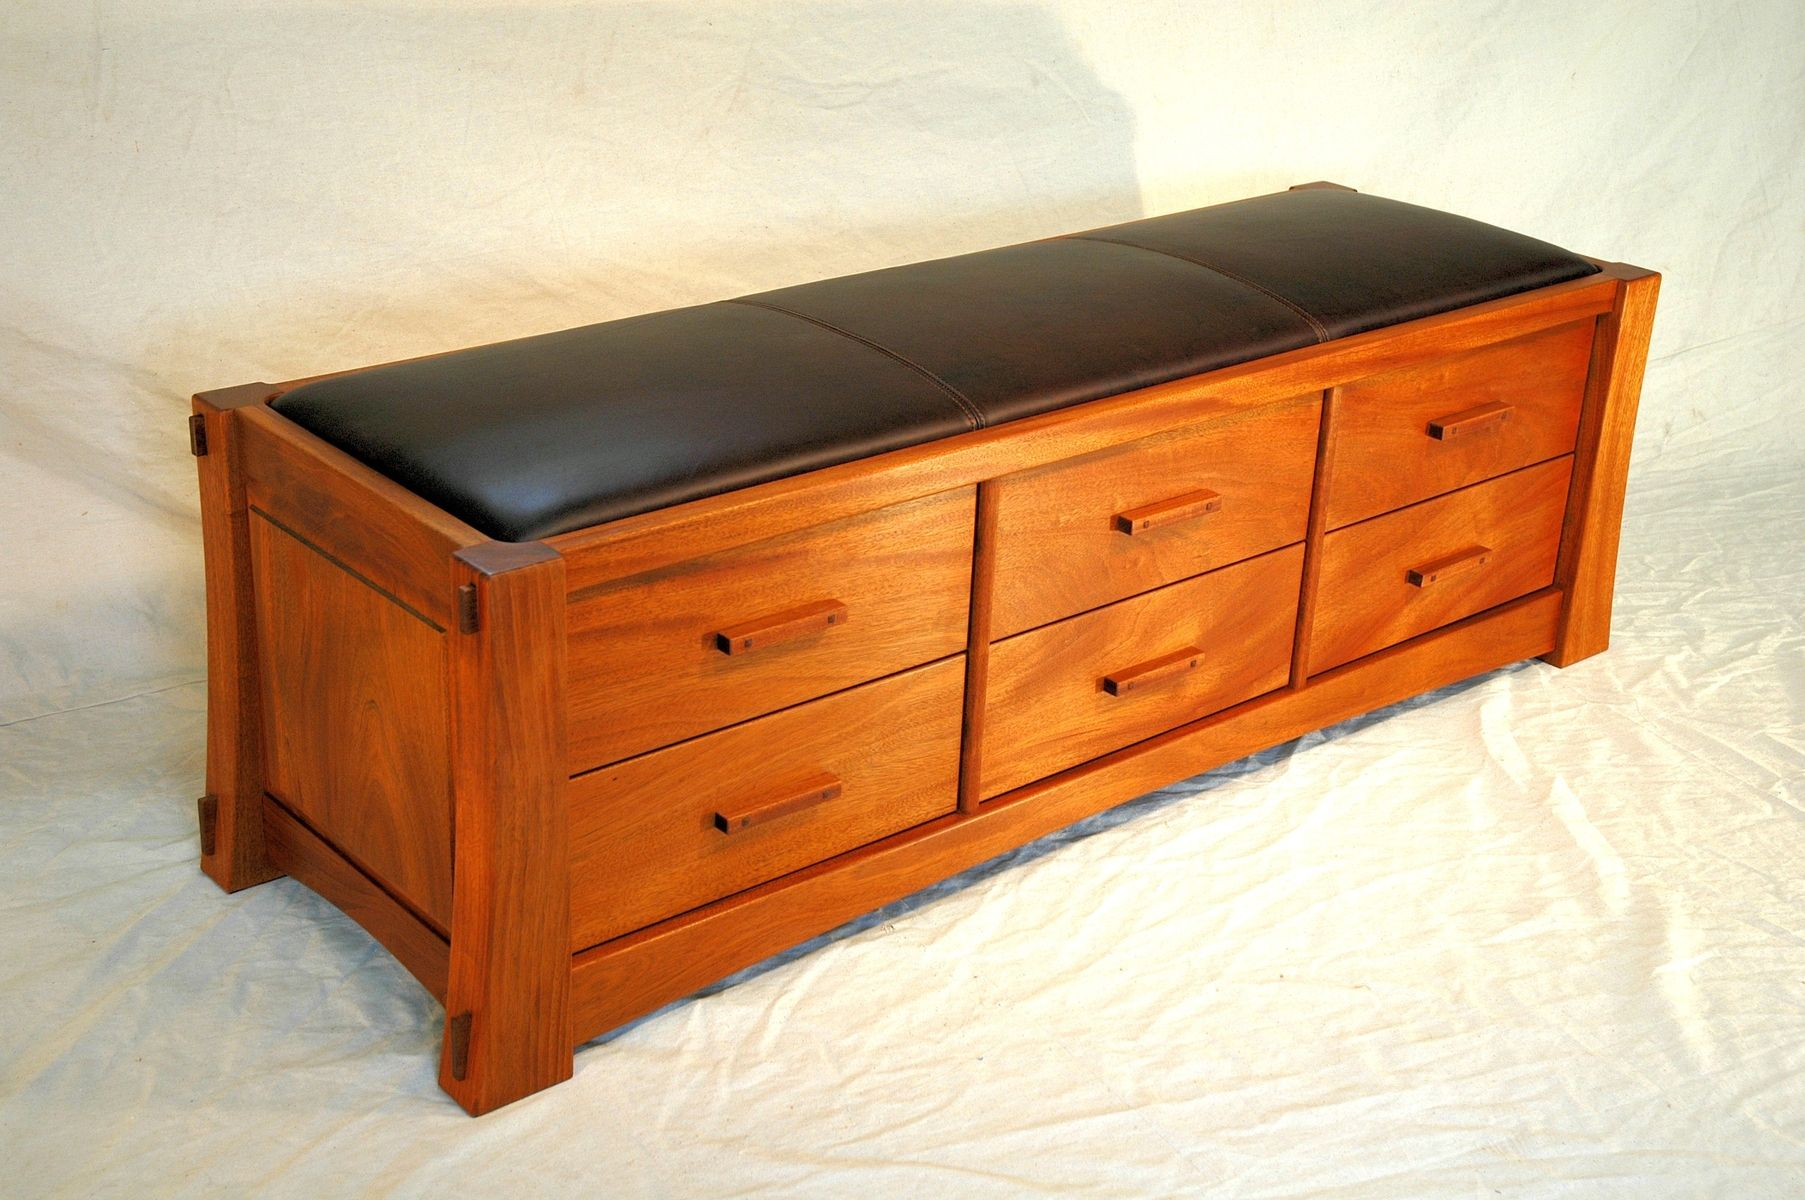 Buy A Custom Made Combination Cd Storage Chest And Bench Made To Order From Montana Fine